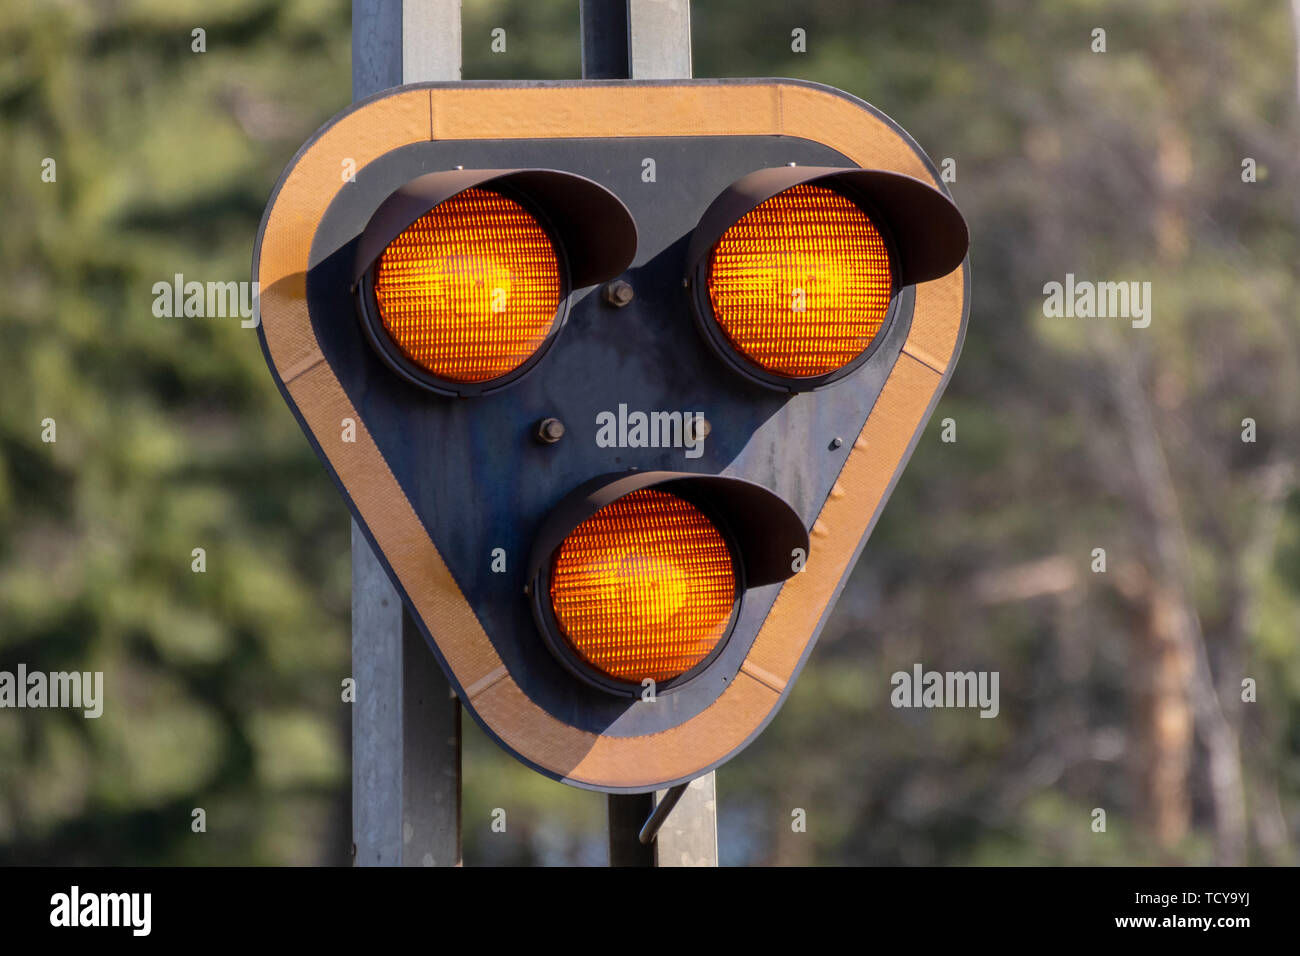 Traffic light for train with three lights, all lighted upp, picture from Northern sweden. - Stock Image